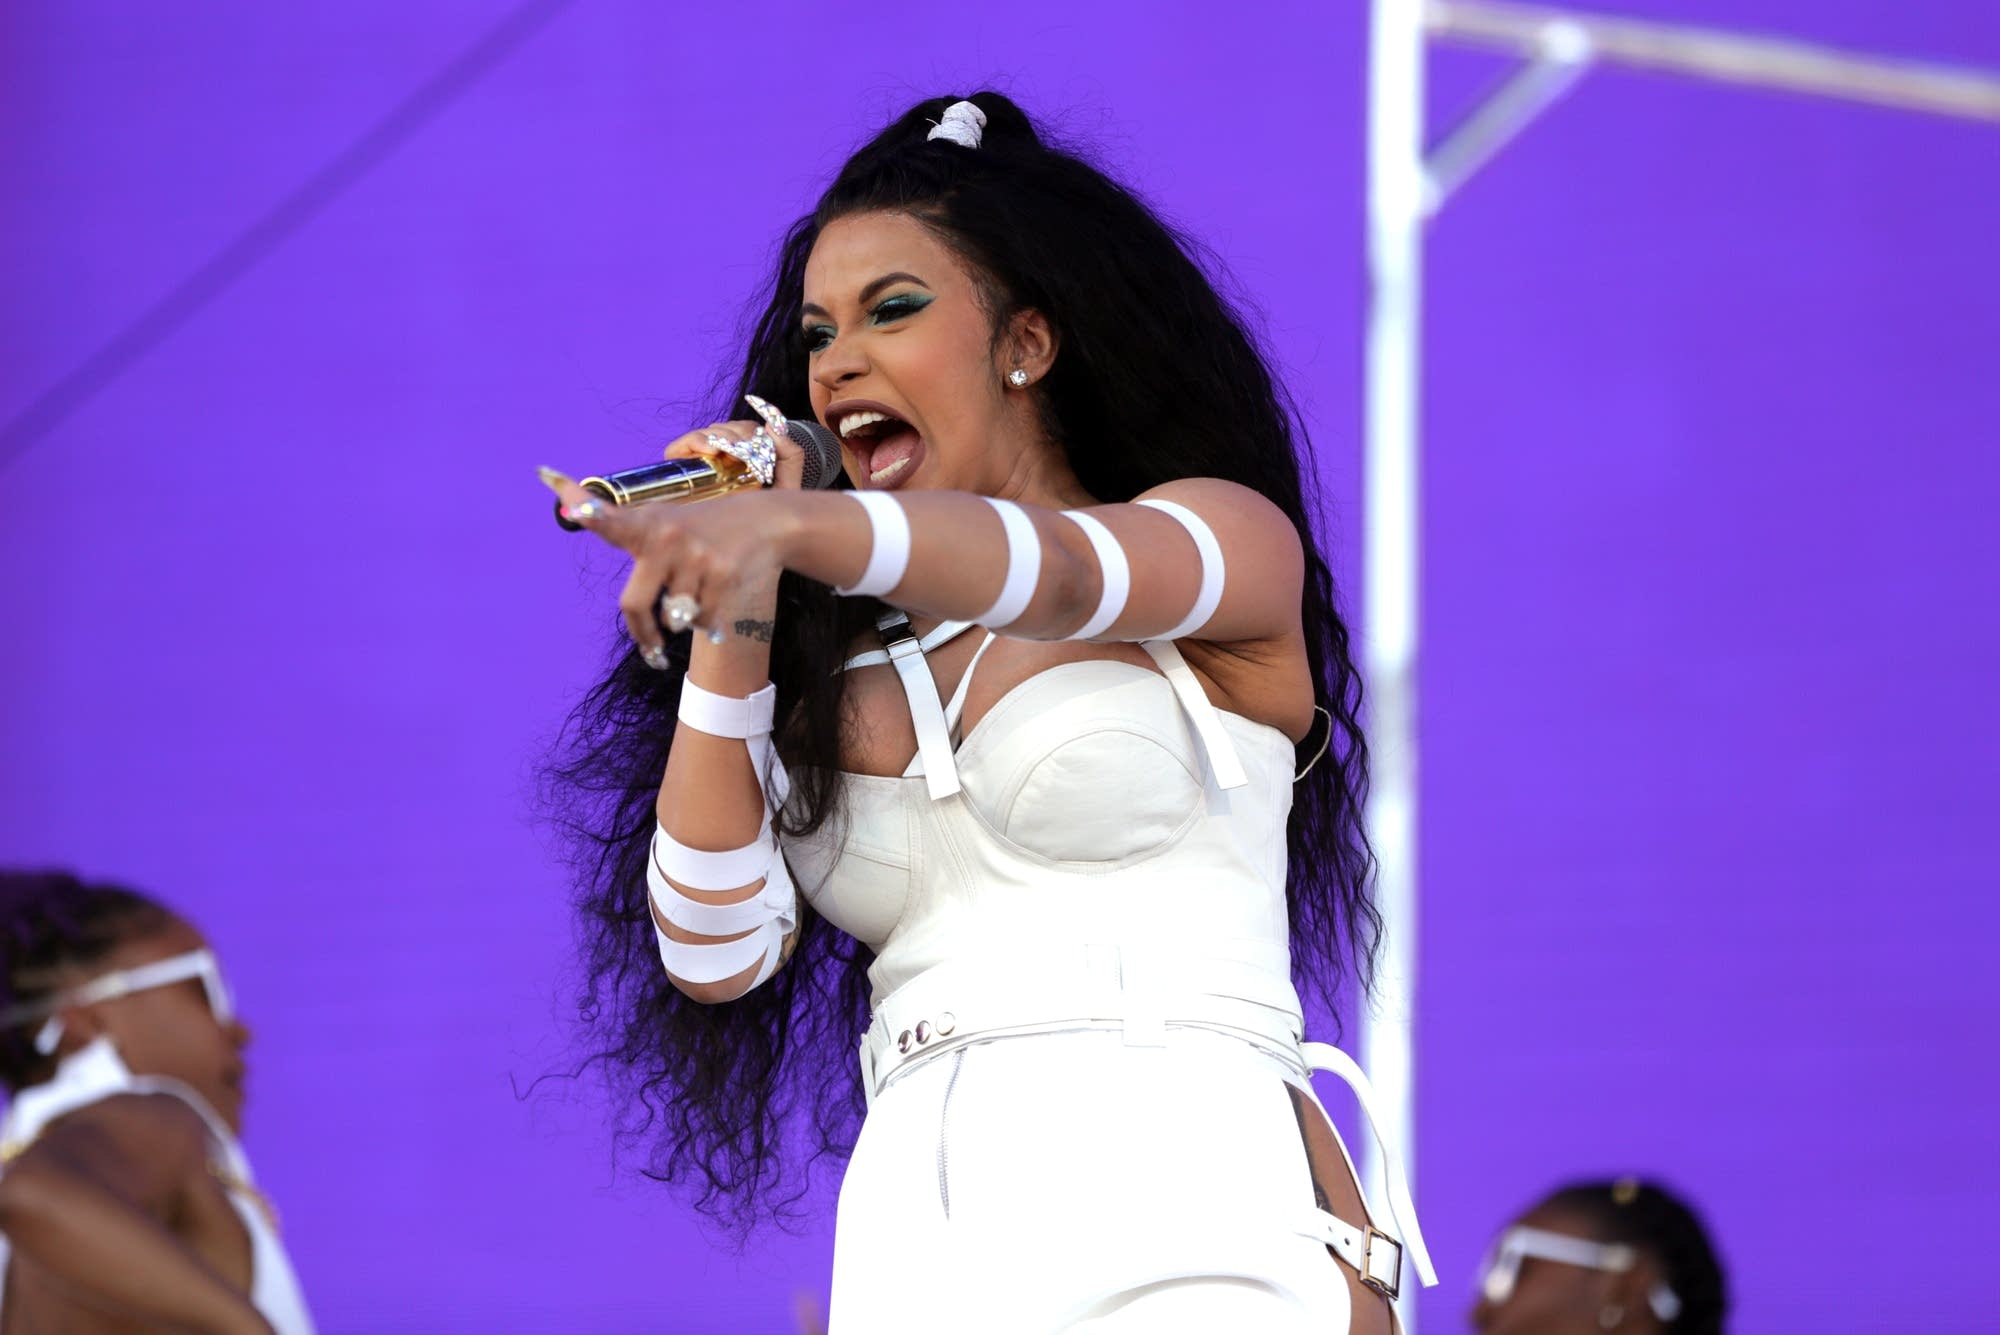 Cardi B Coachella: Cardi B, Hip-hop's Missing Female Voice